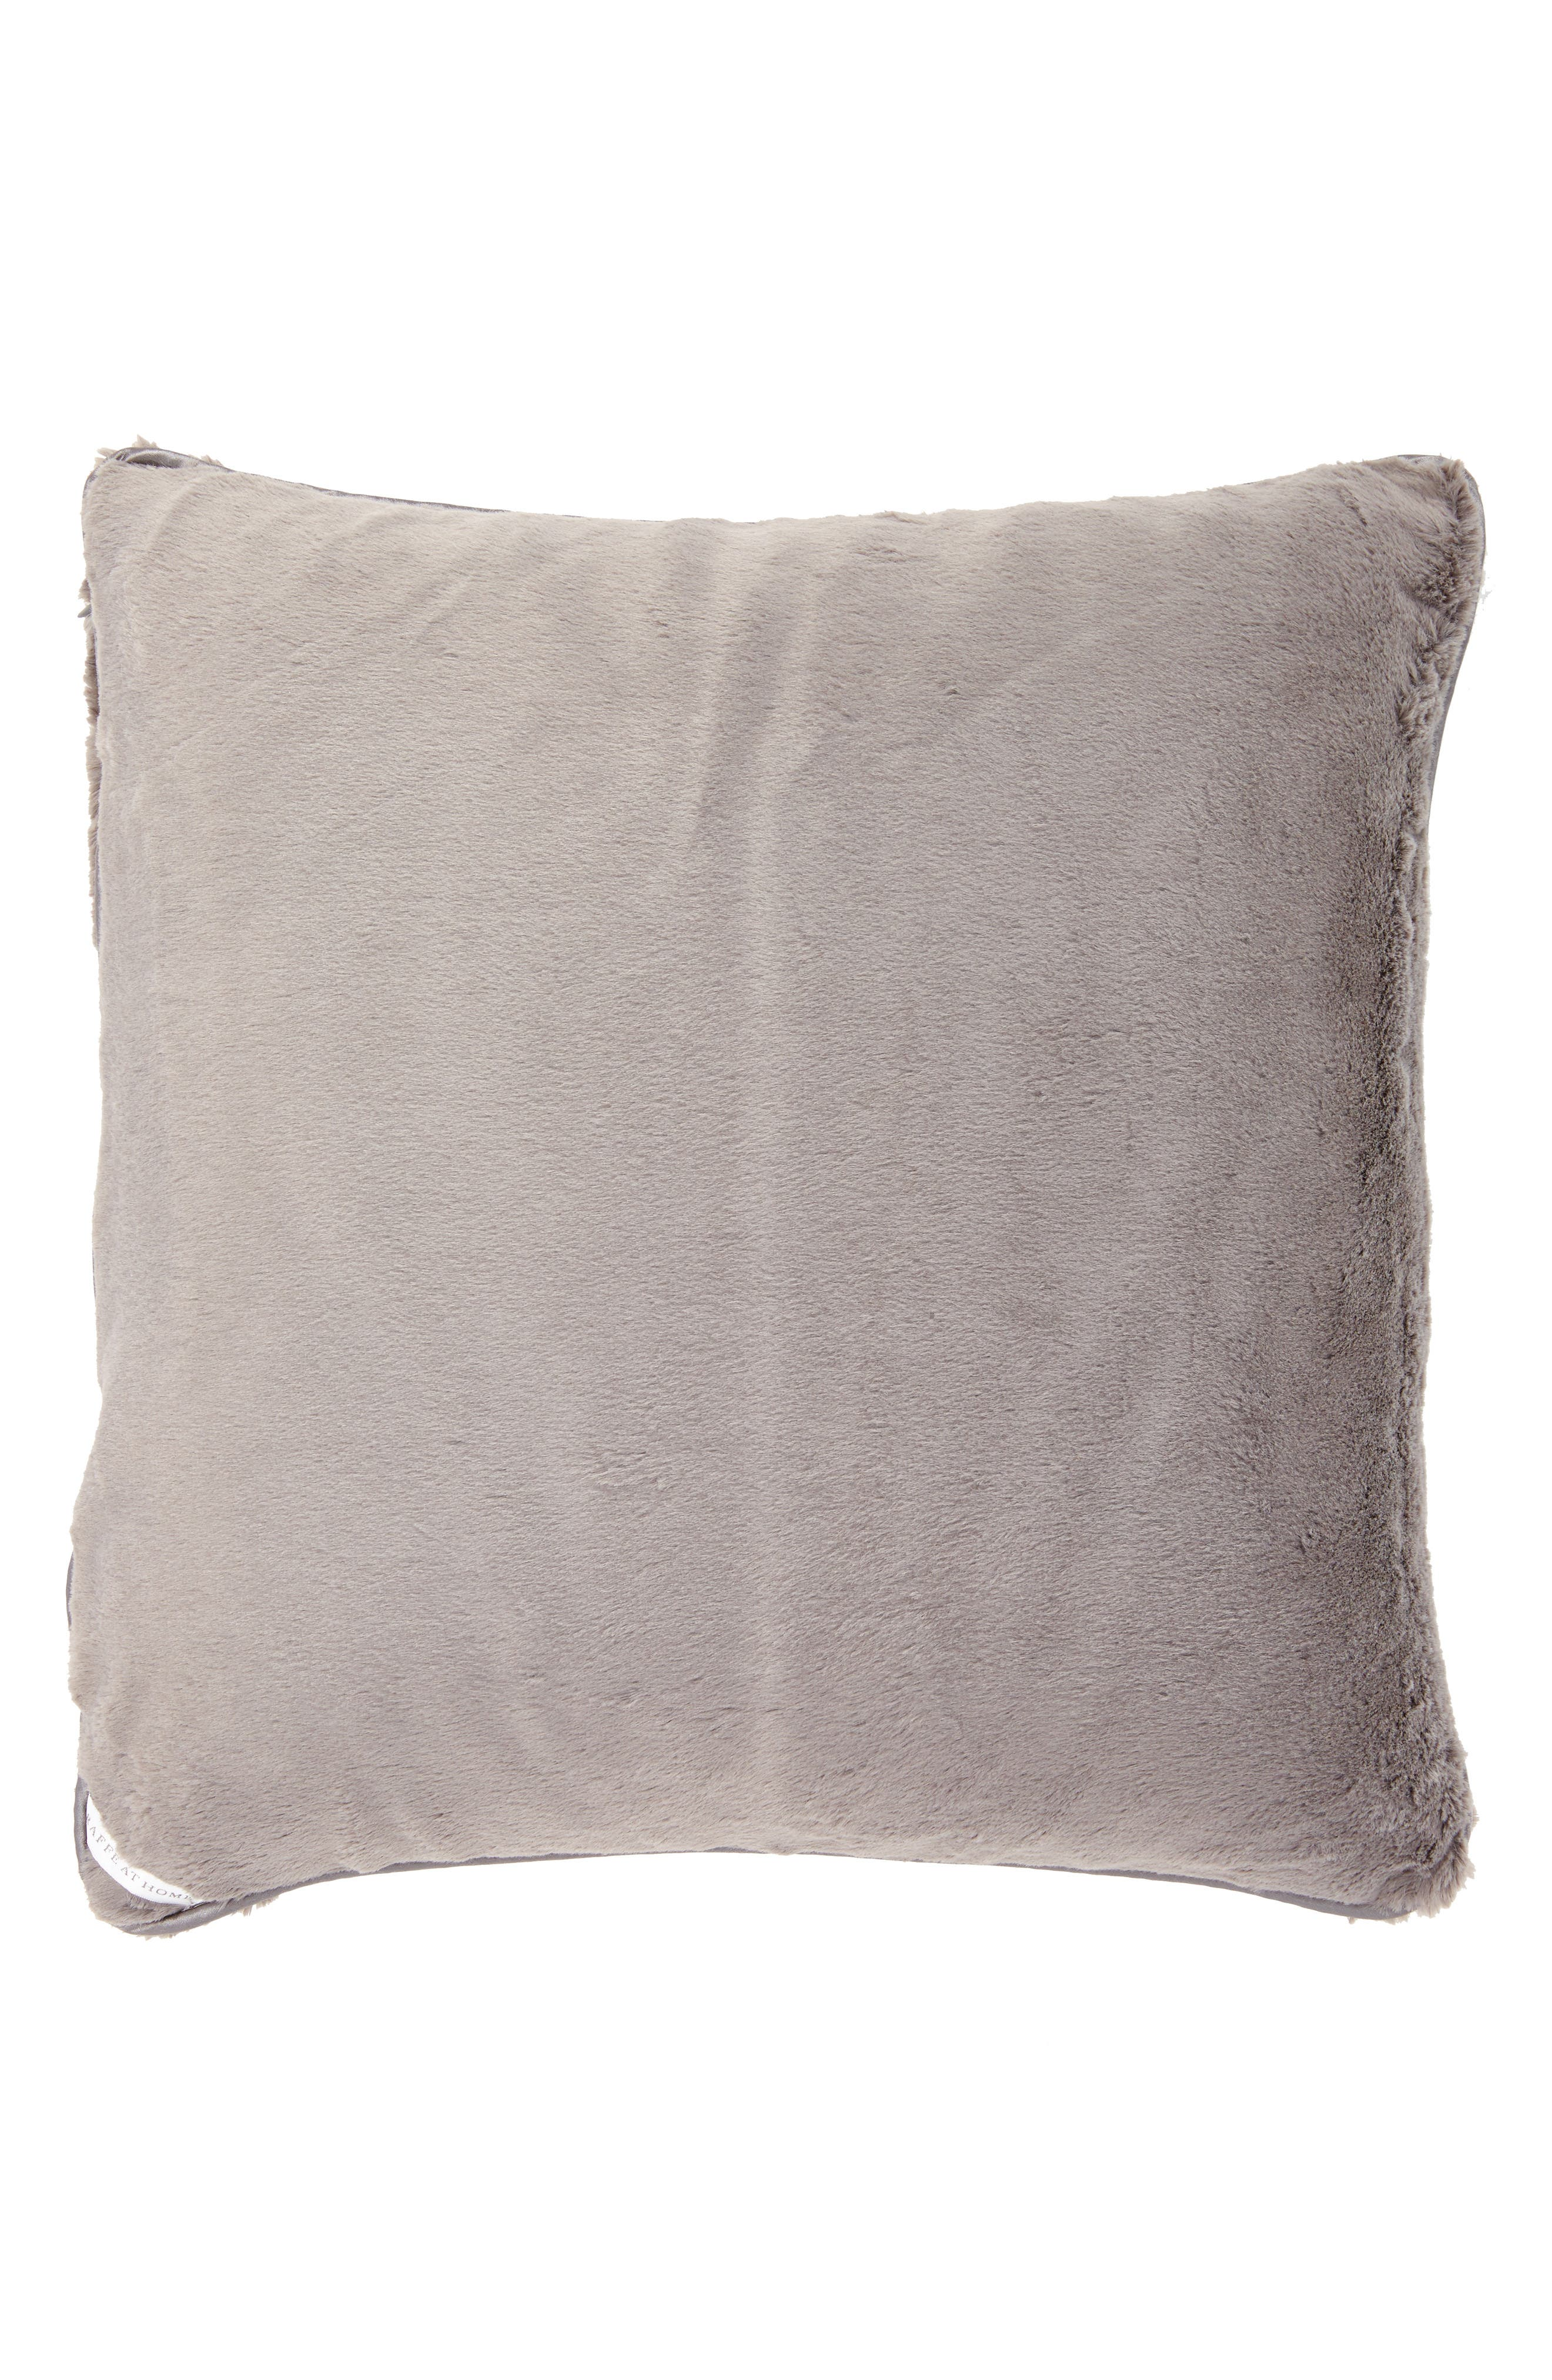 GIRAFFE AT HOME 'Luxe' Throw Pillow, Main, color, CHARCOAL